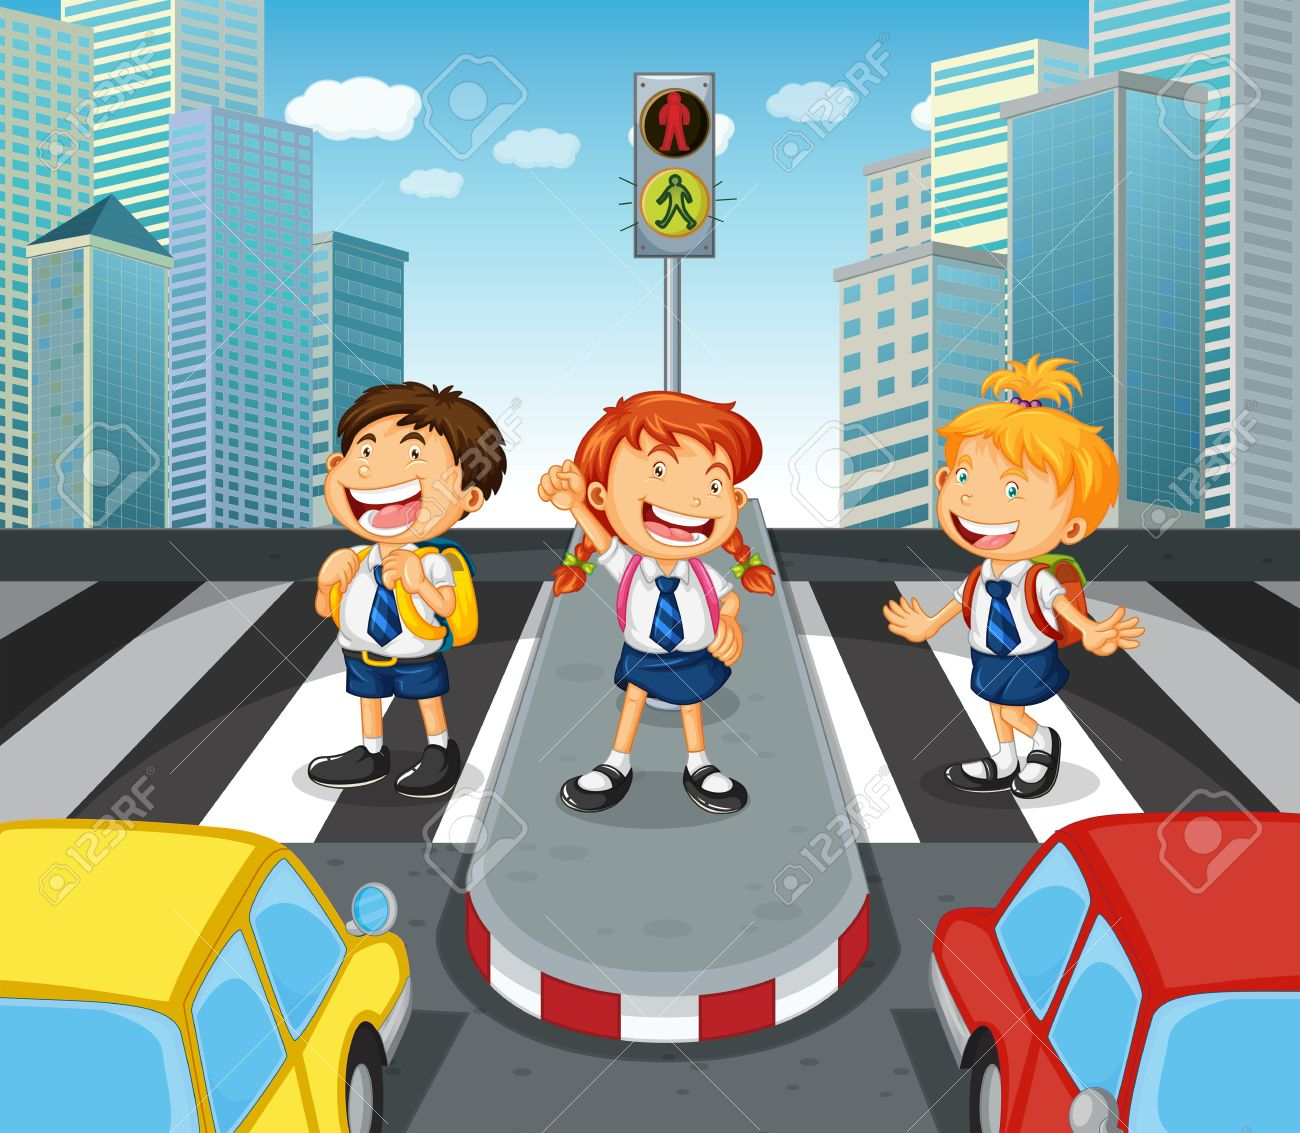 Children crossing the road on zebra crossing illustration.